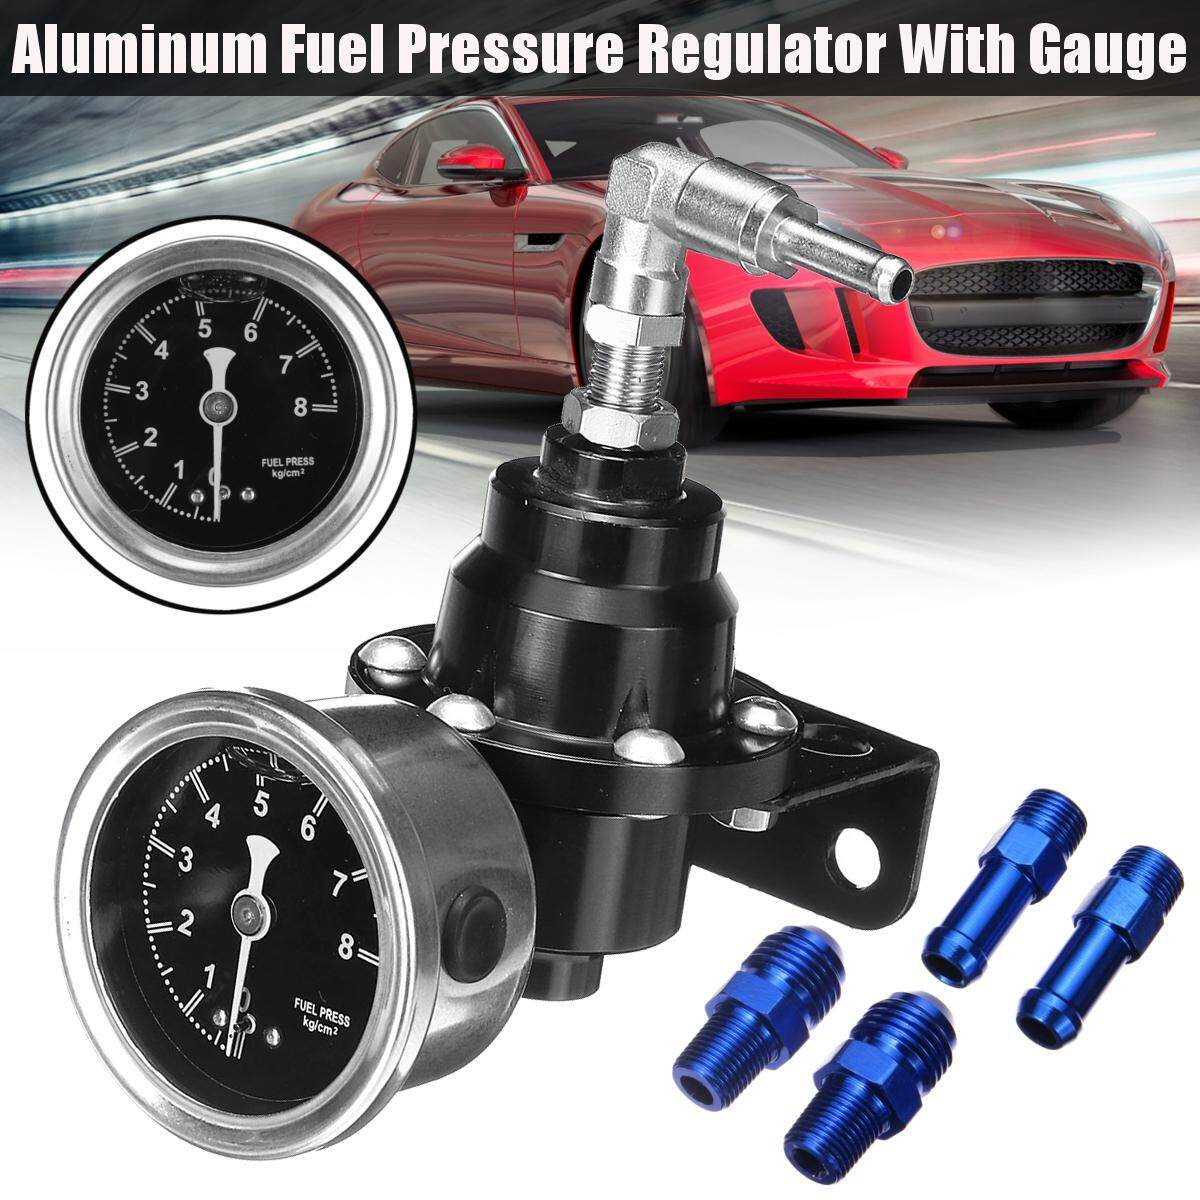 Fuel Pressure Testers - Buy Fuel Pressure Testers at Best Price in